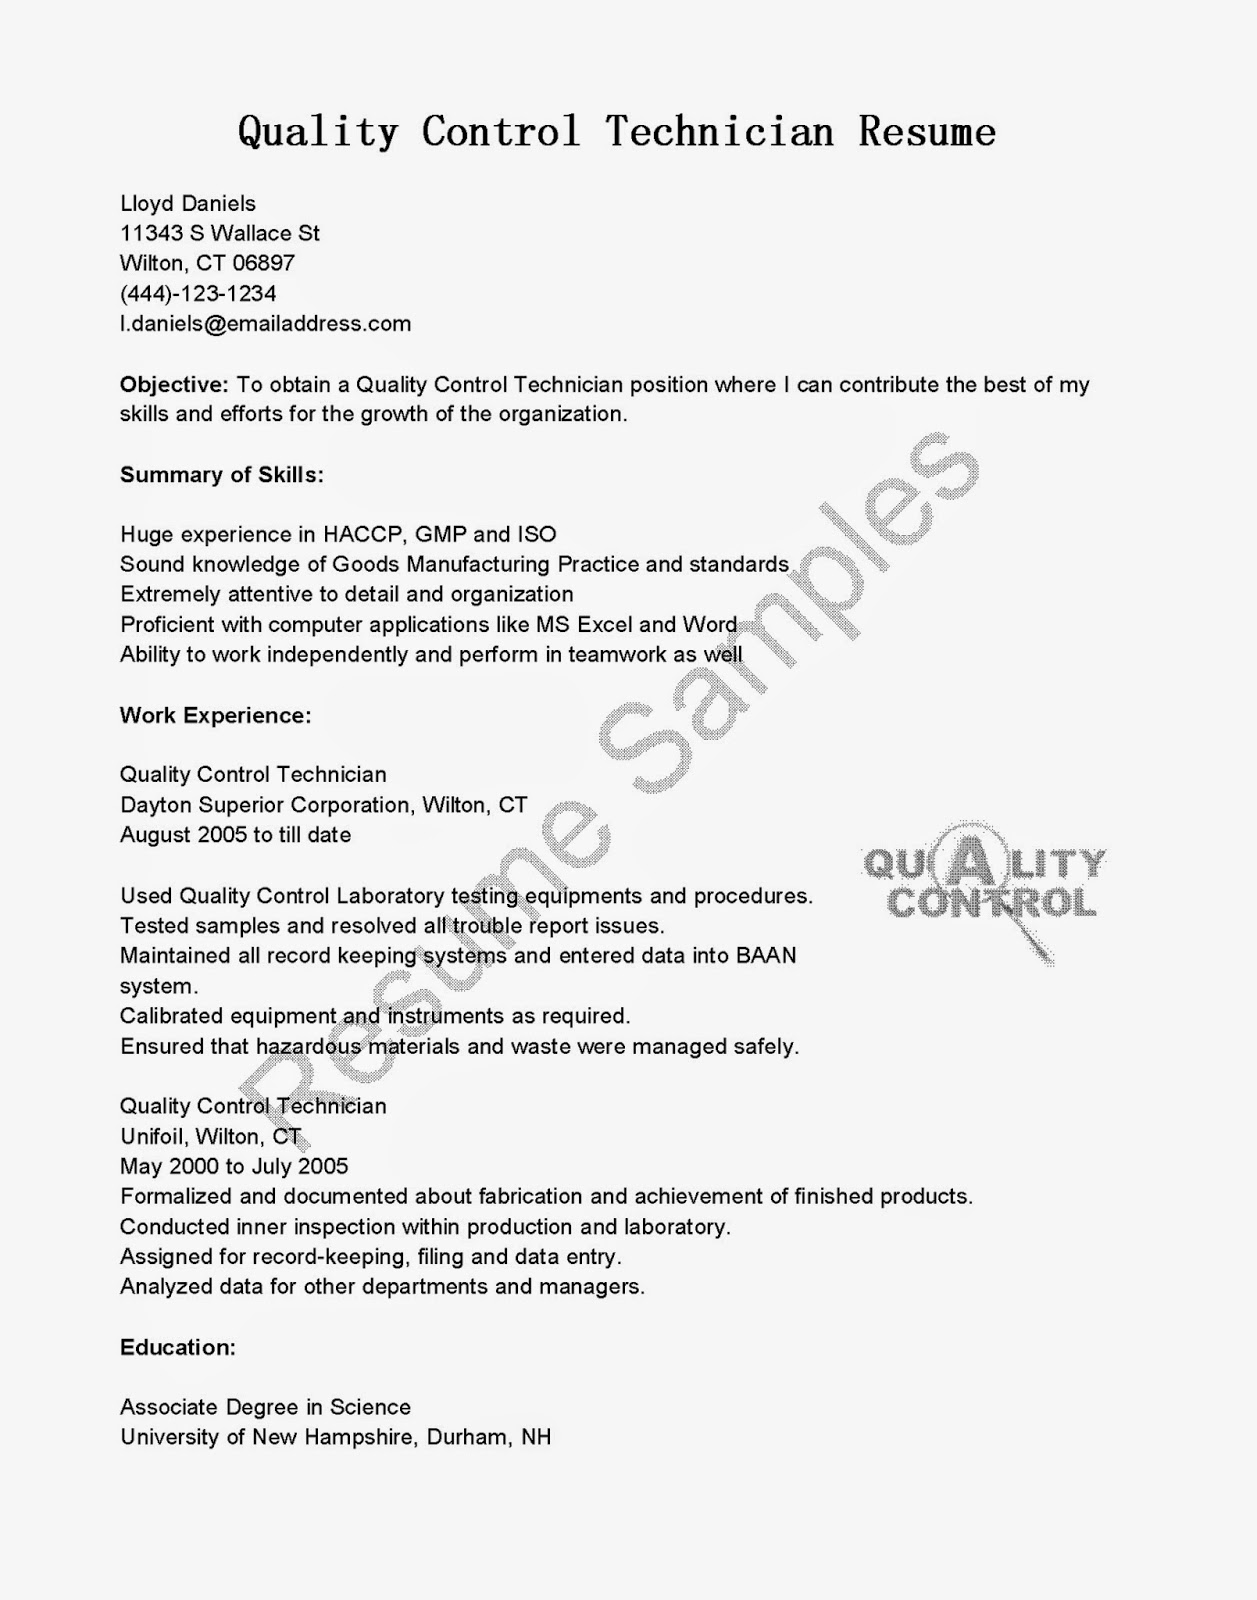 Curriculum Vitae Cover Letter Sample   Cover Letter Templates Resume Nicu Rn Nicu Resume Icu Er Nurse Resume Templates Sample Nicu Nurse  Resume Example Neonatal